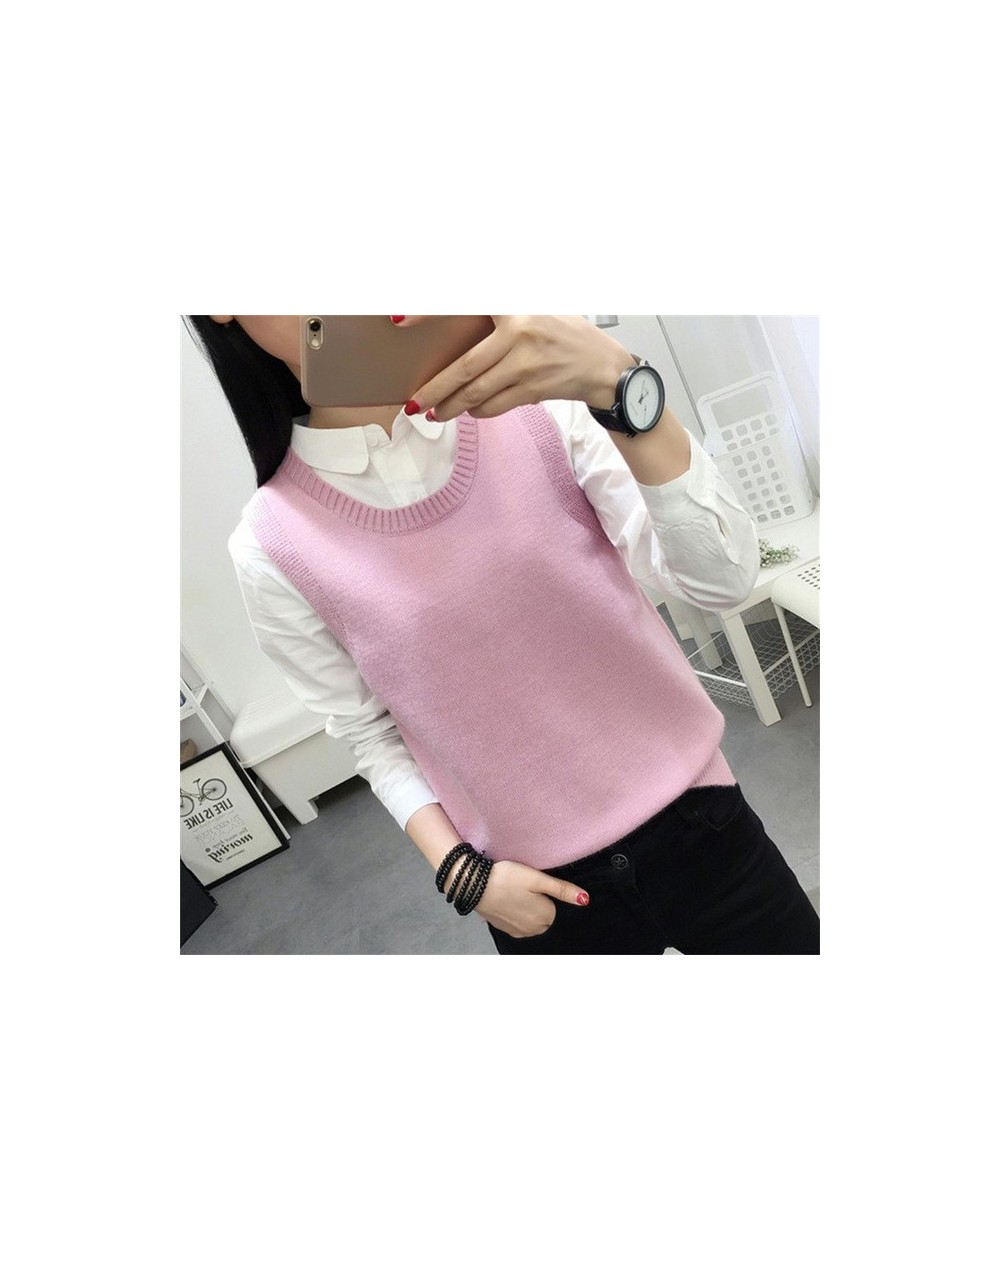 Sleeveless Vest Sweater Women Preppy Style Look Round Neck Side Vent Slit Knitted Vest Pullovers T Jumper Female Knit Sweate...